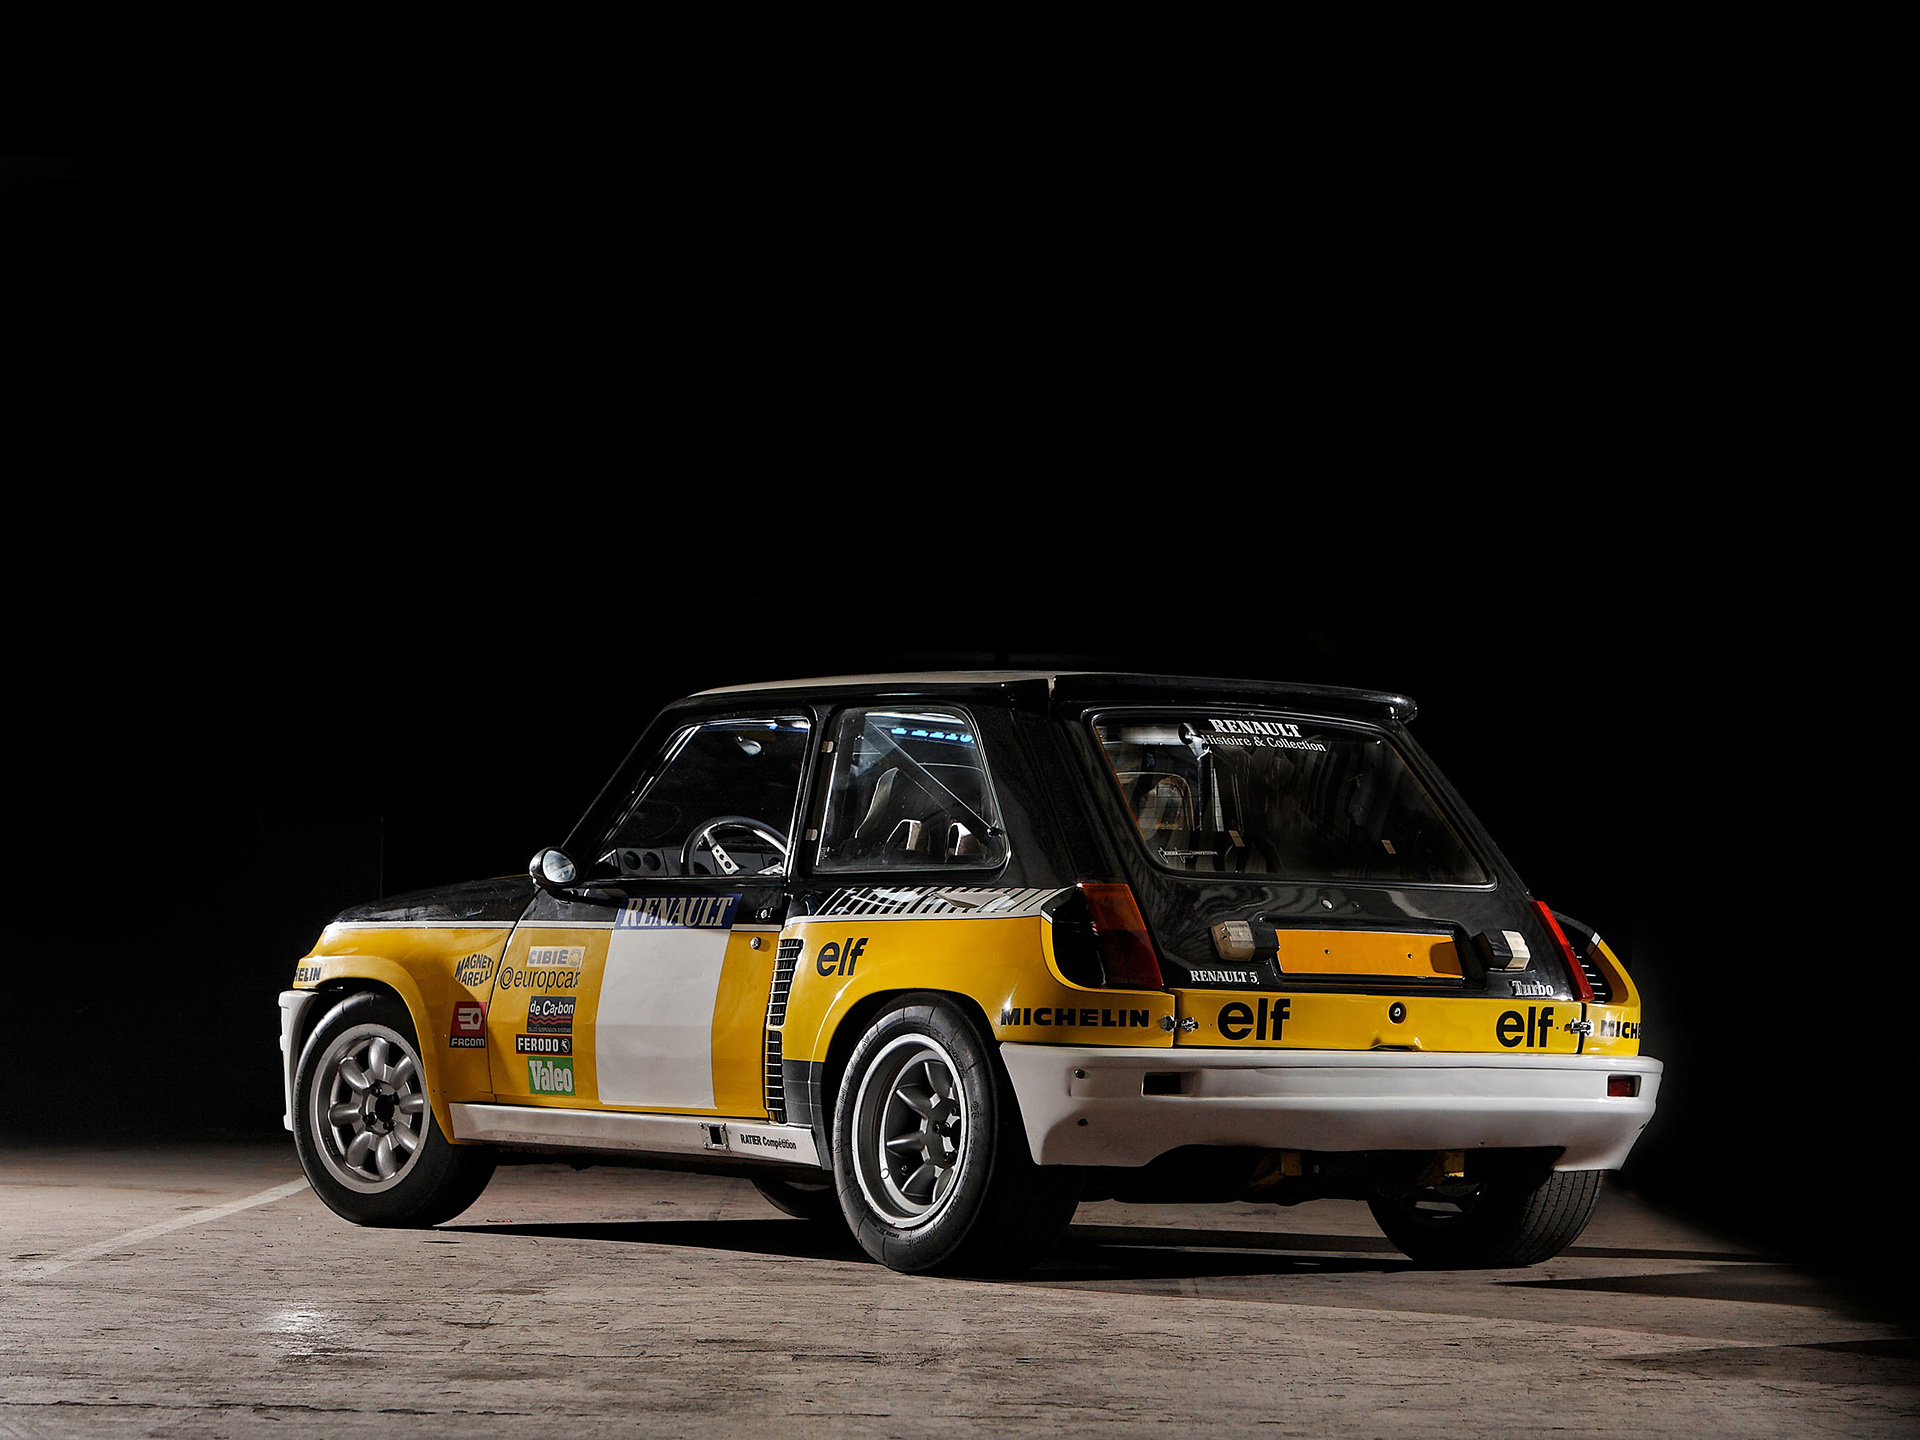 1981 renault 5 turbo rally race racing classic wallpaper 1920x1440 122974 wallpaperup. Black Bedroom Furniture Sets. Home Design Ideas